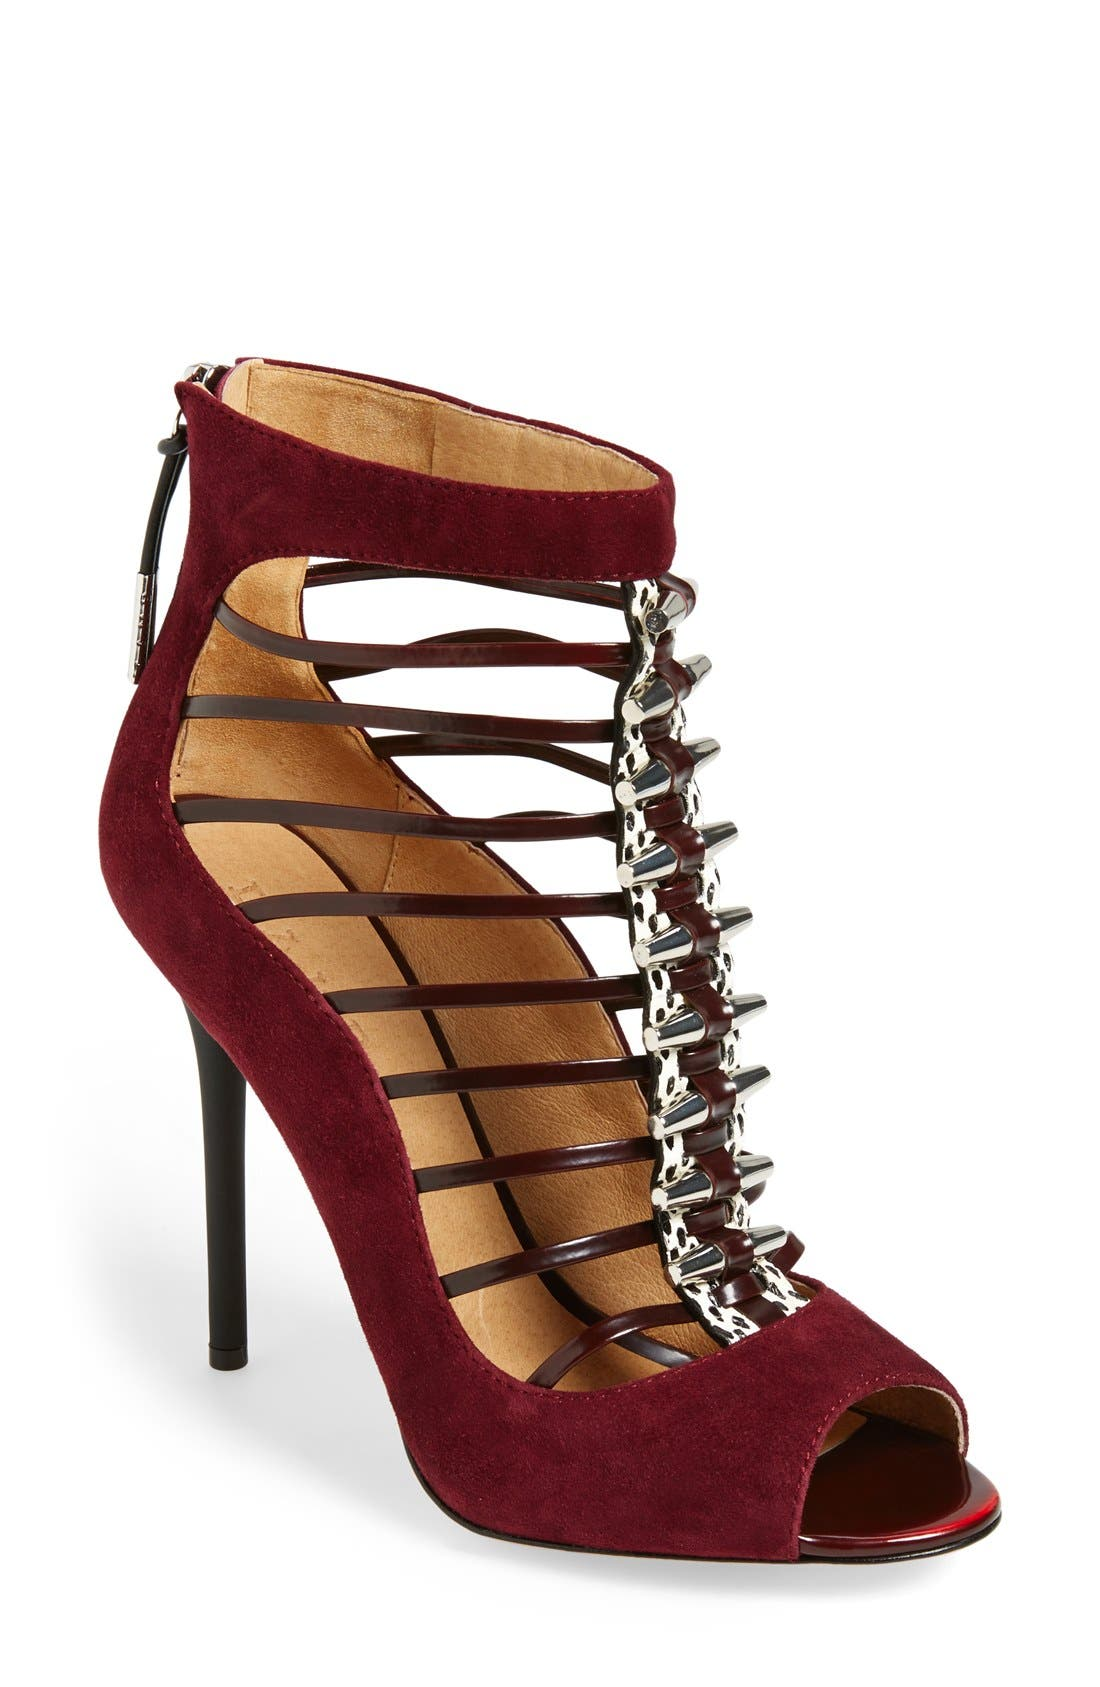 Alternate Image 1 Selected - L.A.M.B. 'Master' Cage Peep Toe Sandal (Women)